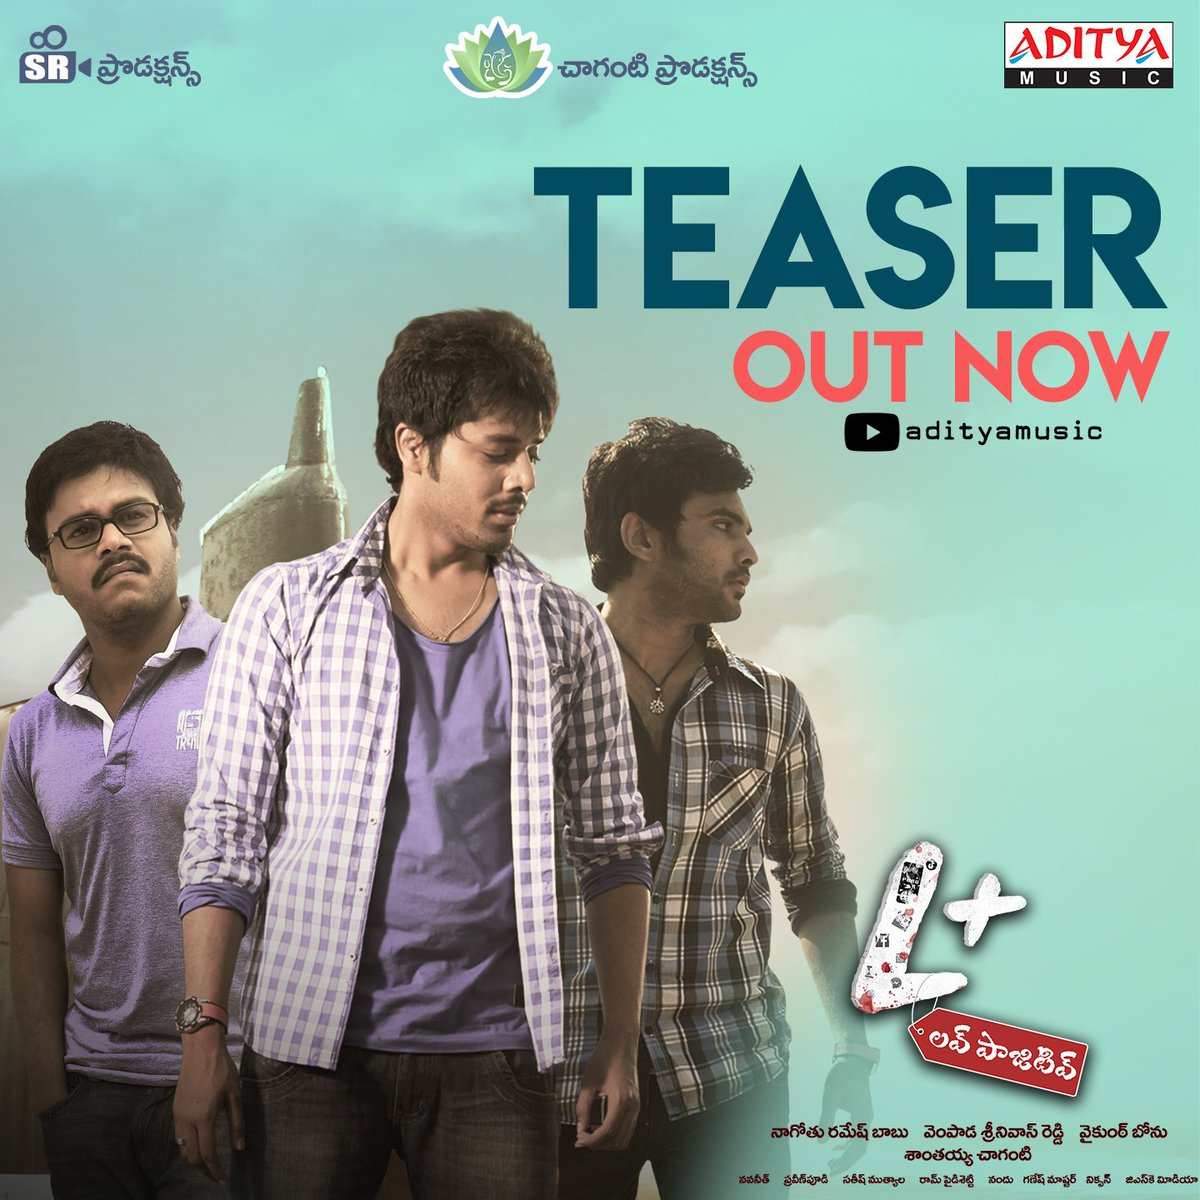 #LovePositive Movie Teaser Out Now►  Directed By #VykuntBonu   Music By #NaveenthChari  @ActorNandu #Siddu #Siraj #Rupal #SmithikaAcharya #Sandeepti  @ChagantiMakers @SantaiahC